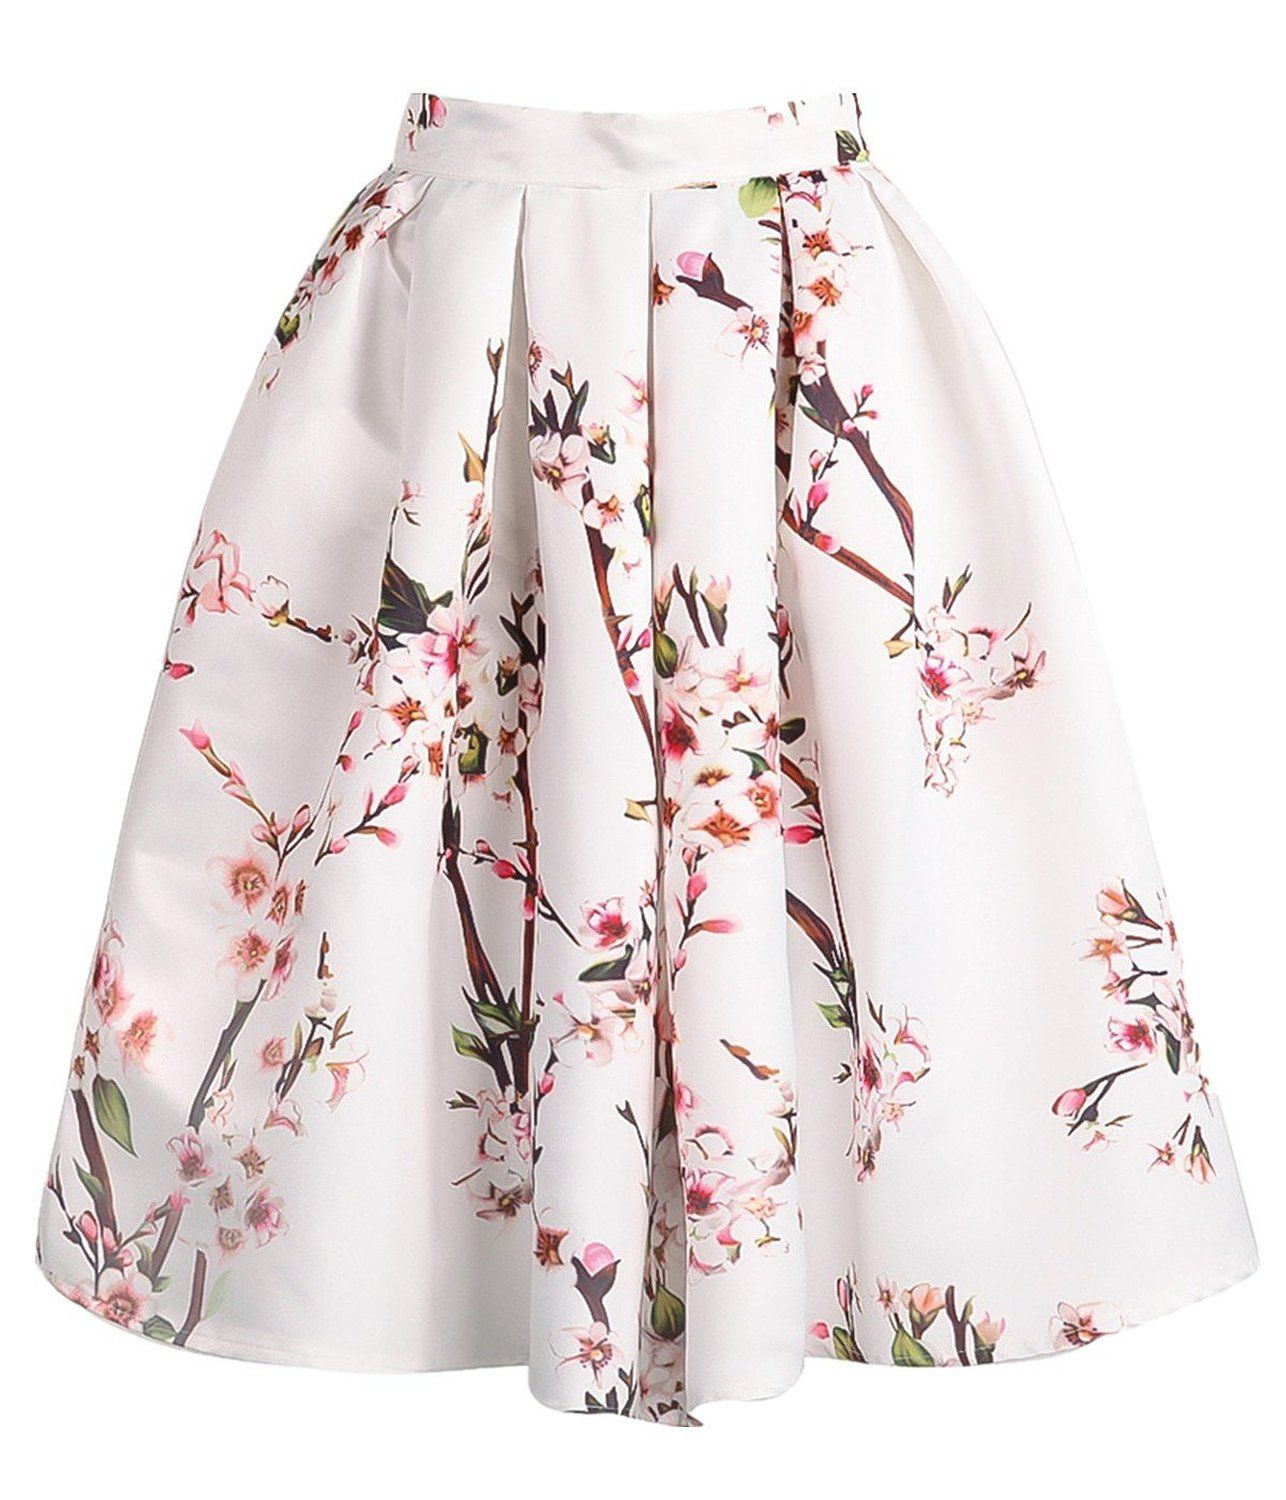 Sheinside® Women's White Floral Pleated Skirt at Amazon Women's ...